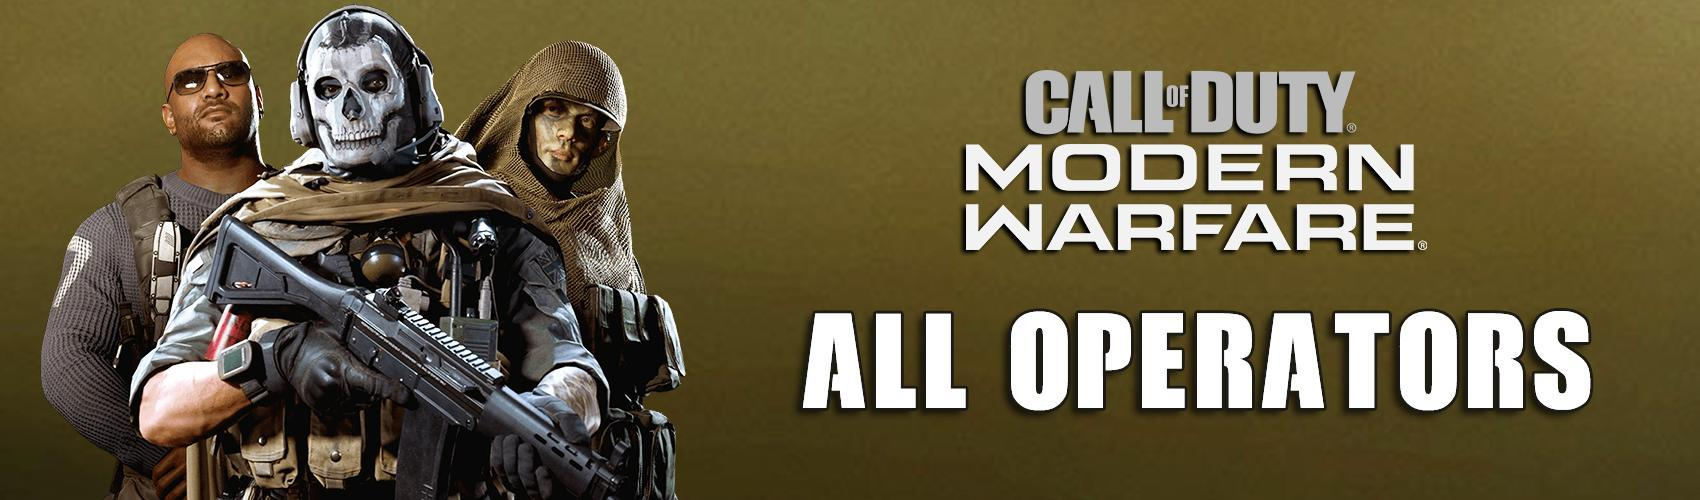 All Operators in Call of Duty: Modern Warfare